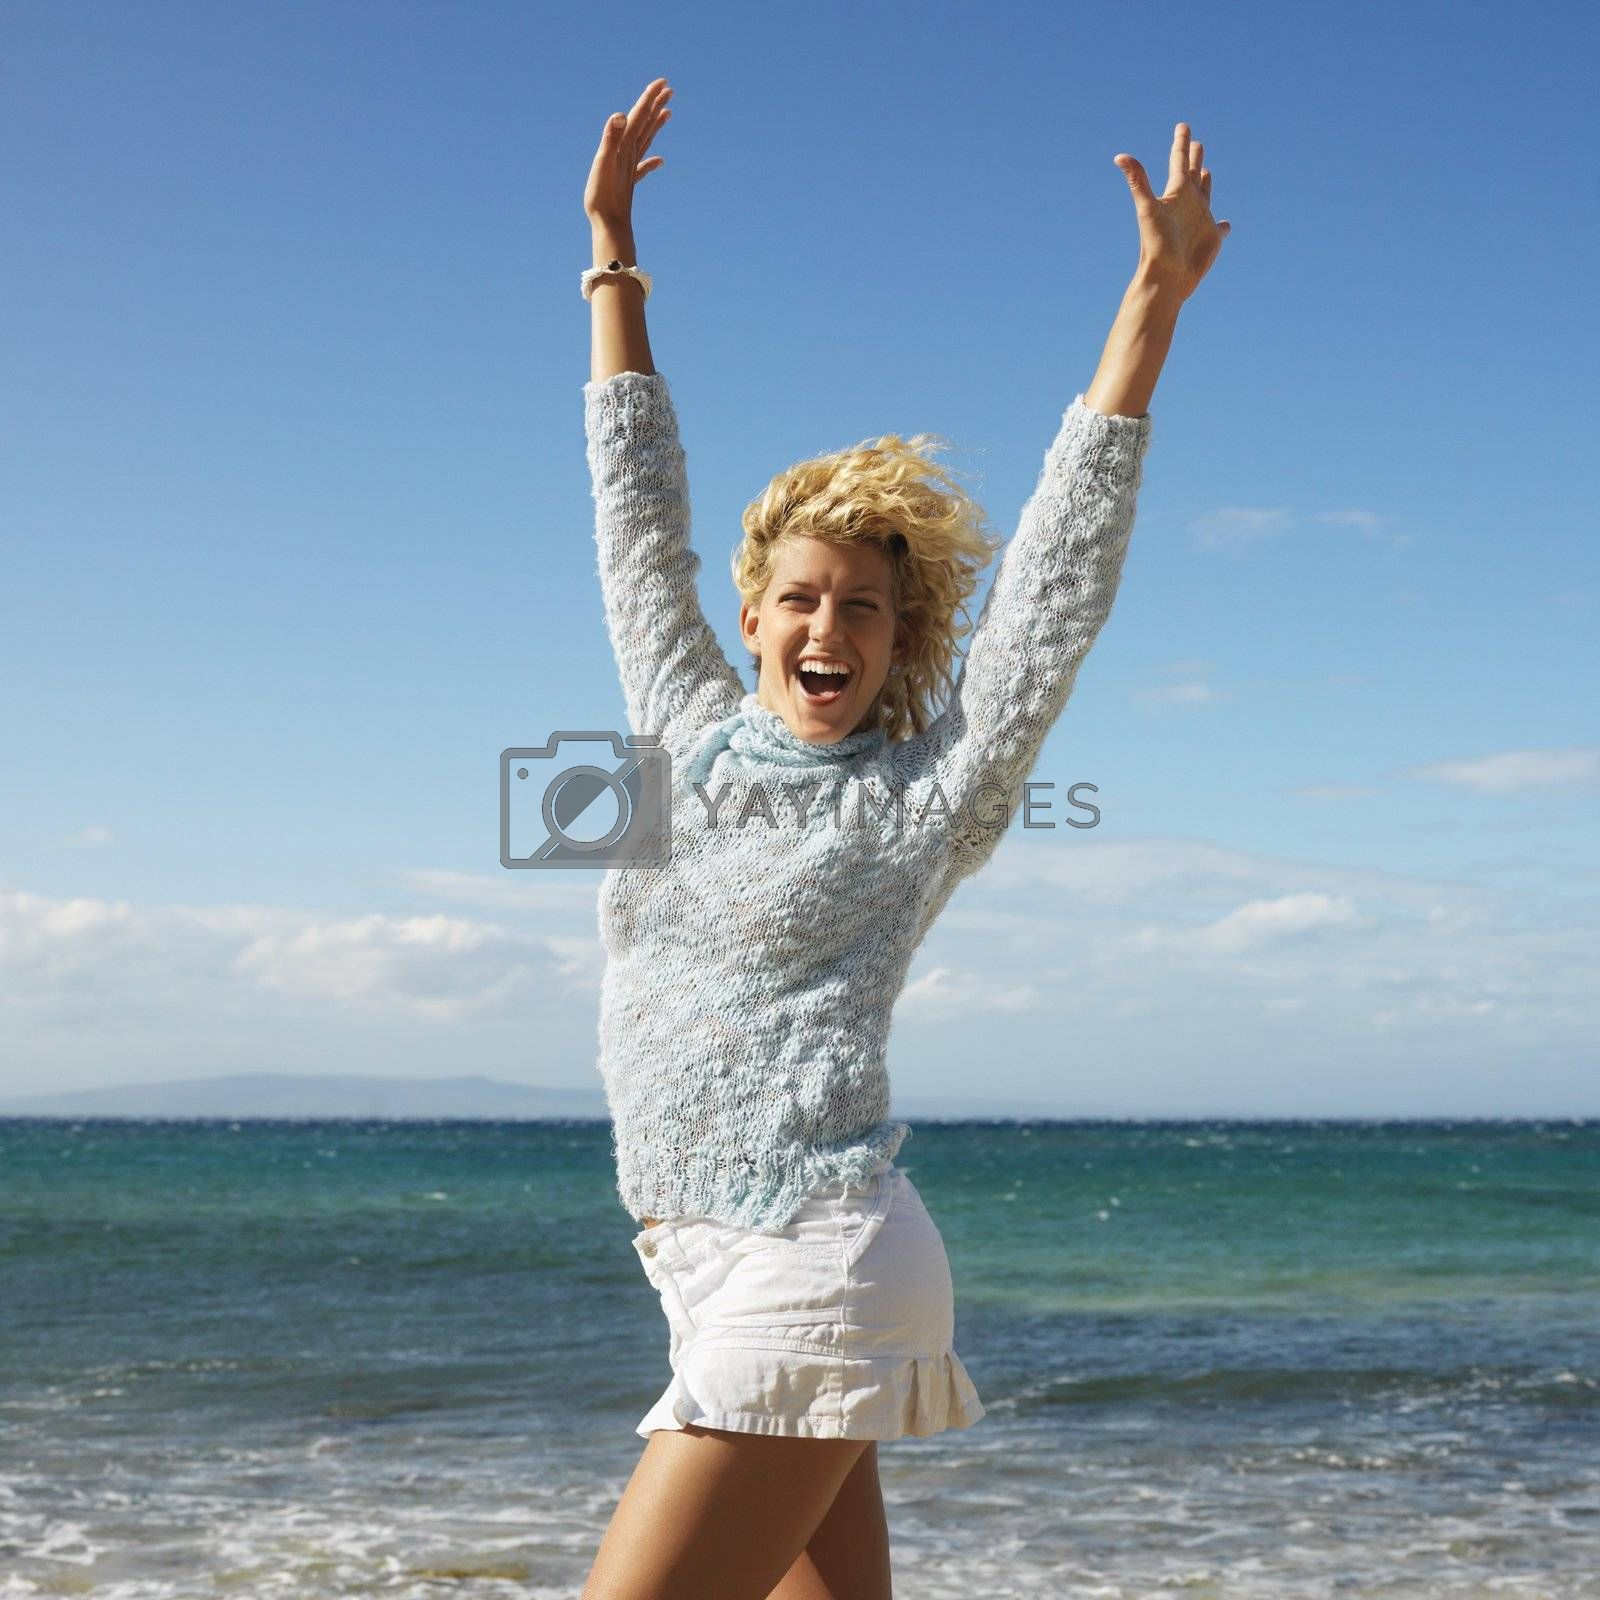 Portrait of attractive young blond woman smiling with arms raised in air on Maui, Hawaii beach.